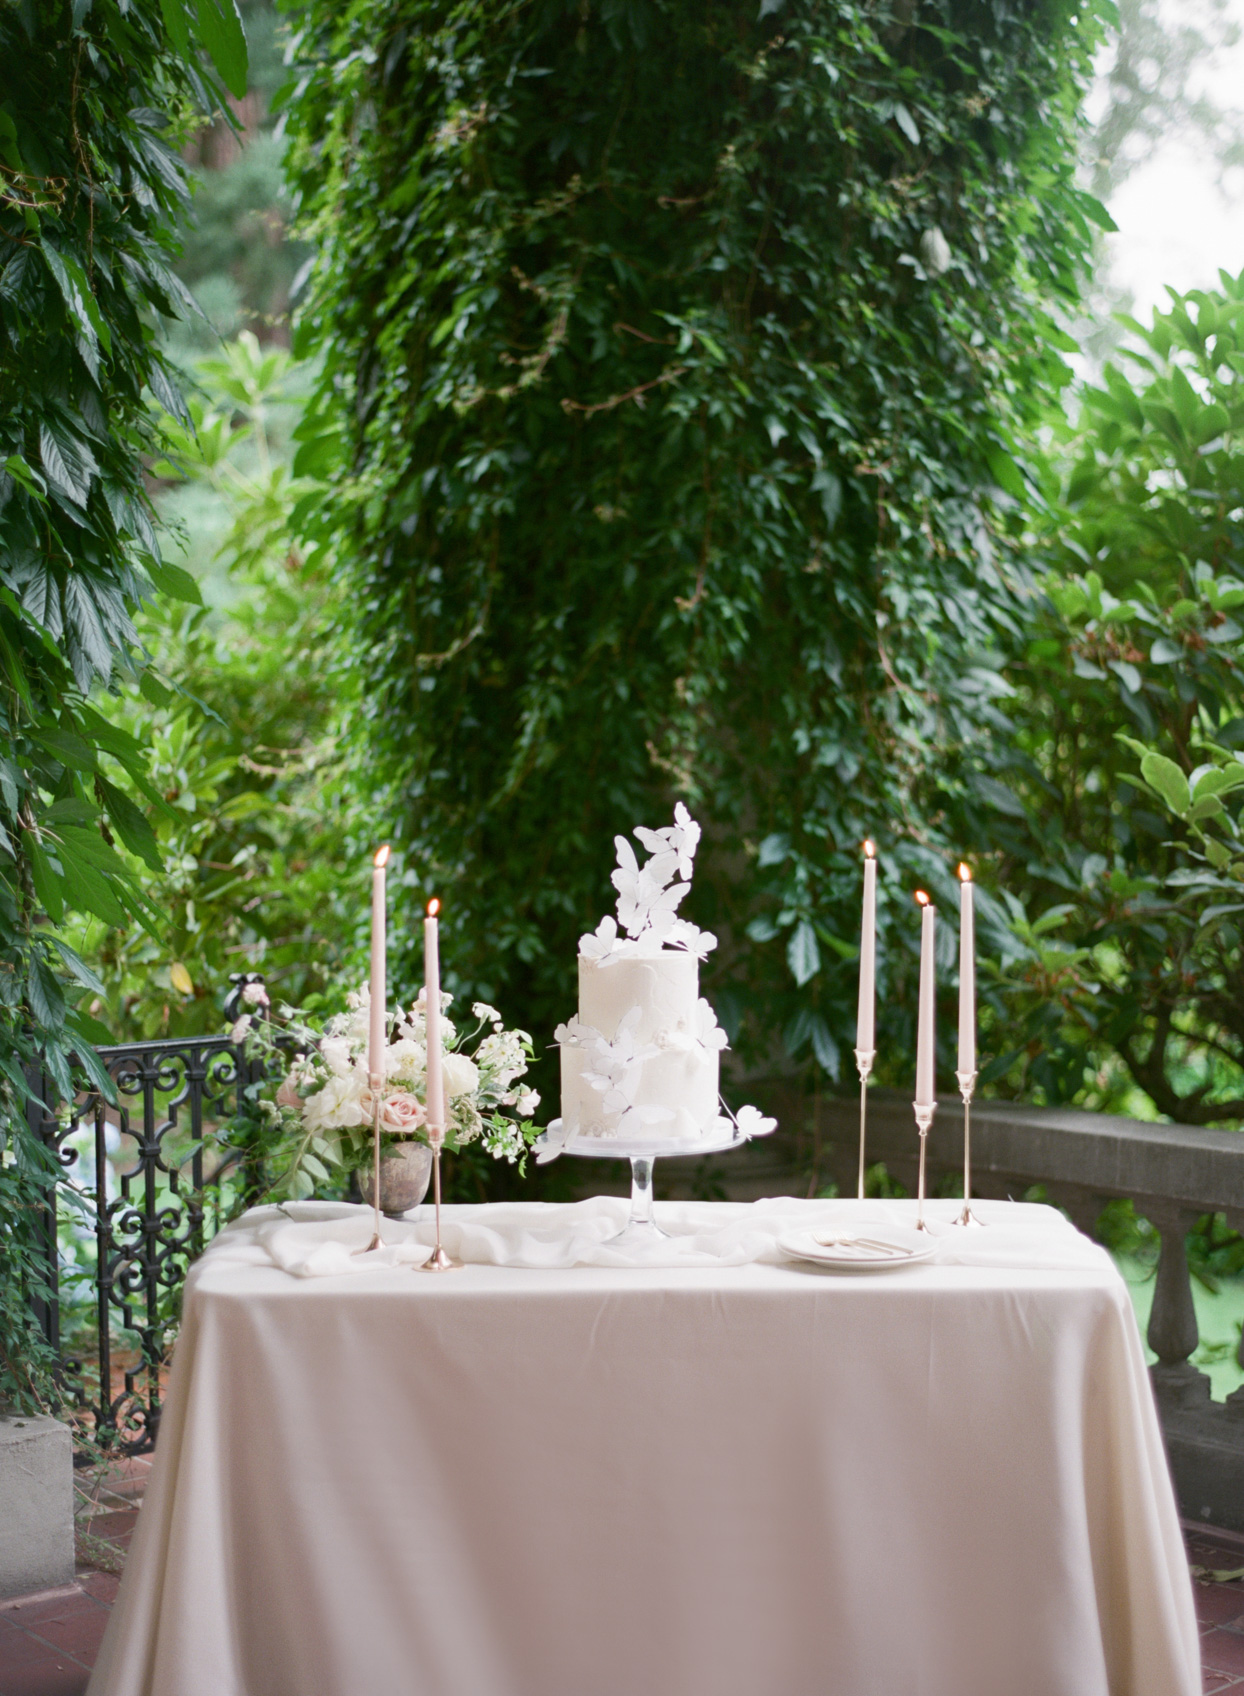 elegant wedding cake, candles, and bouquet on table